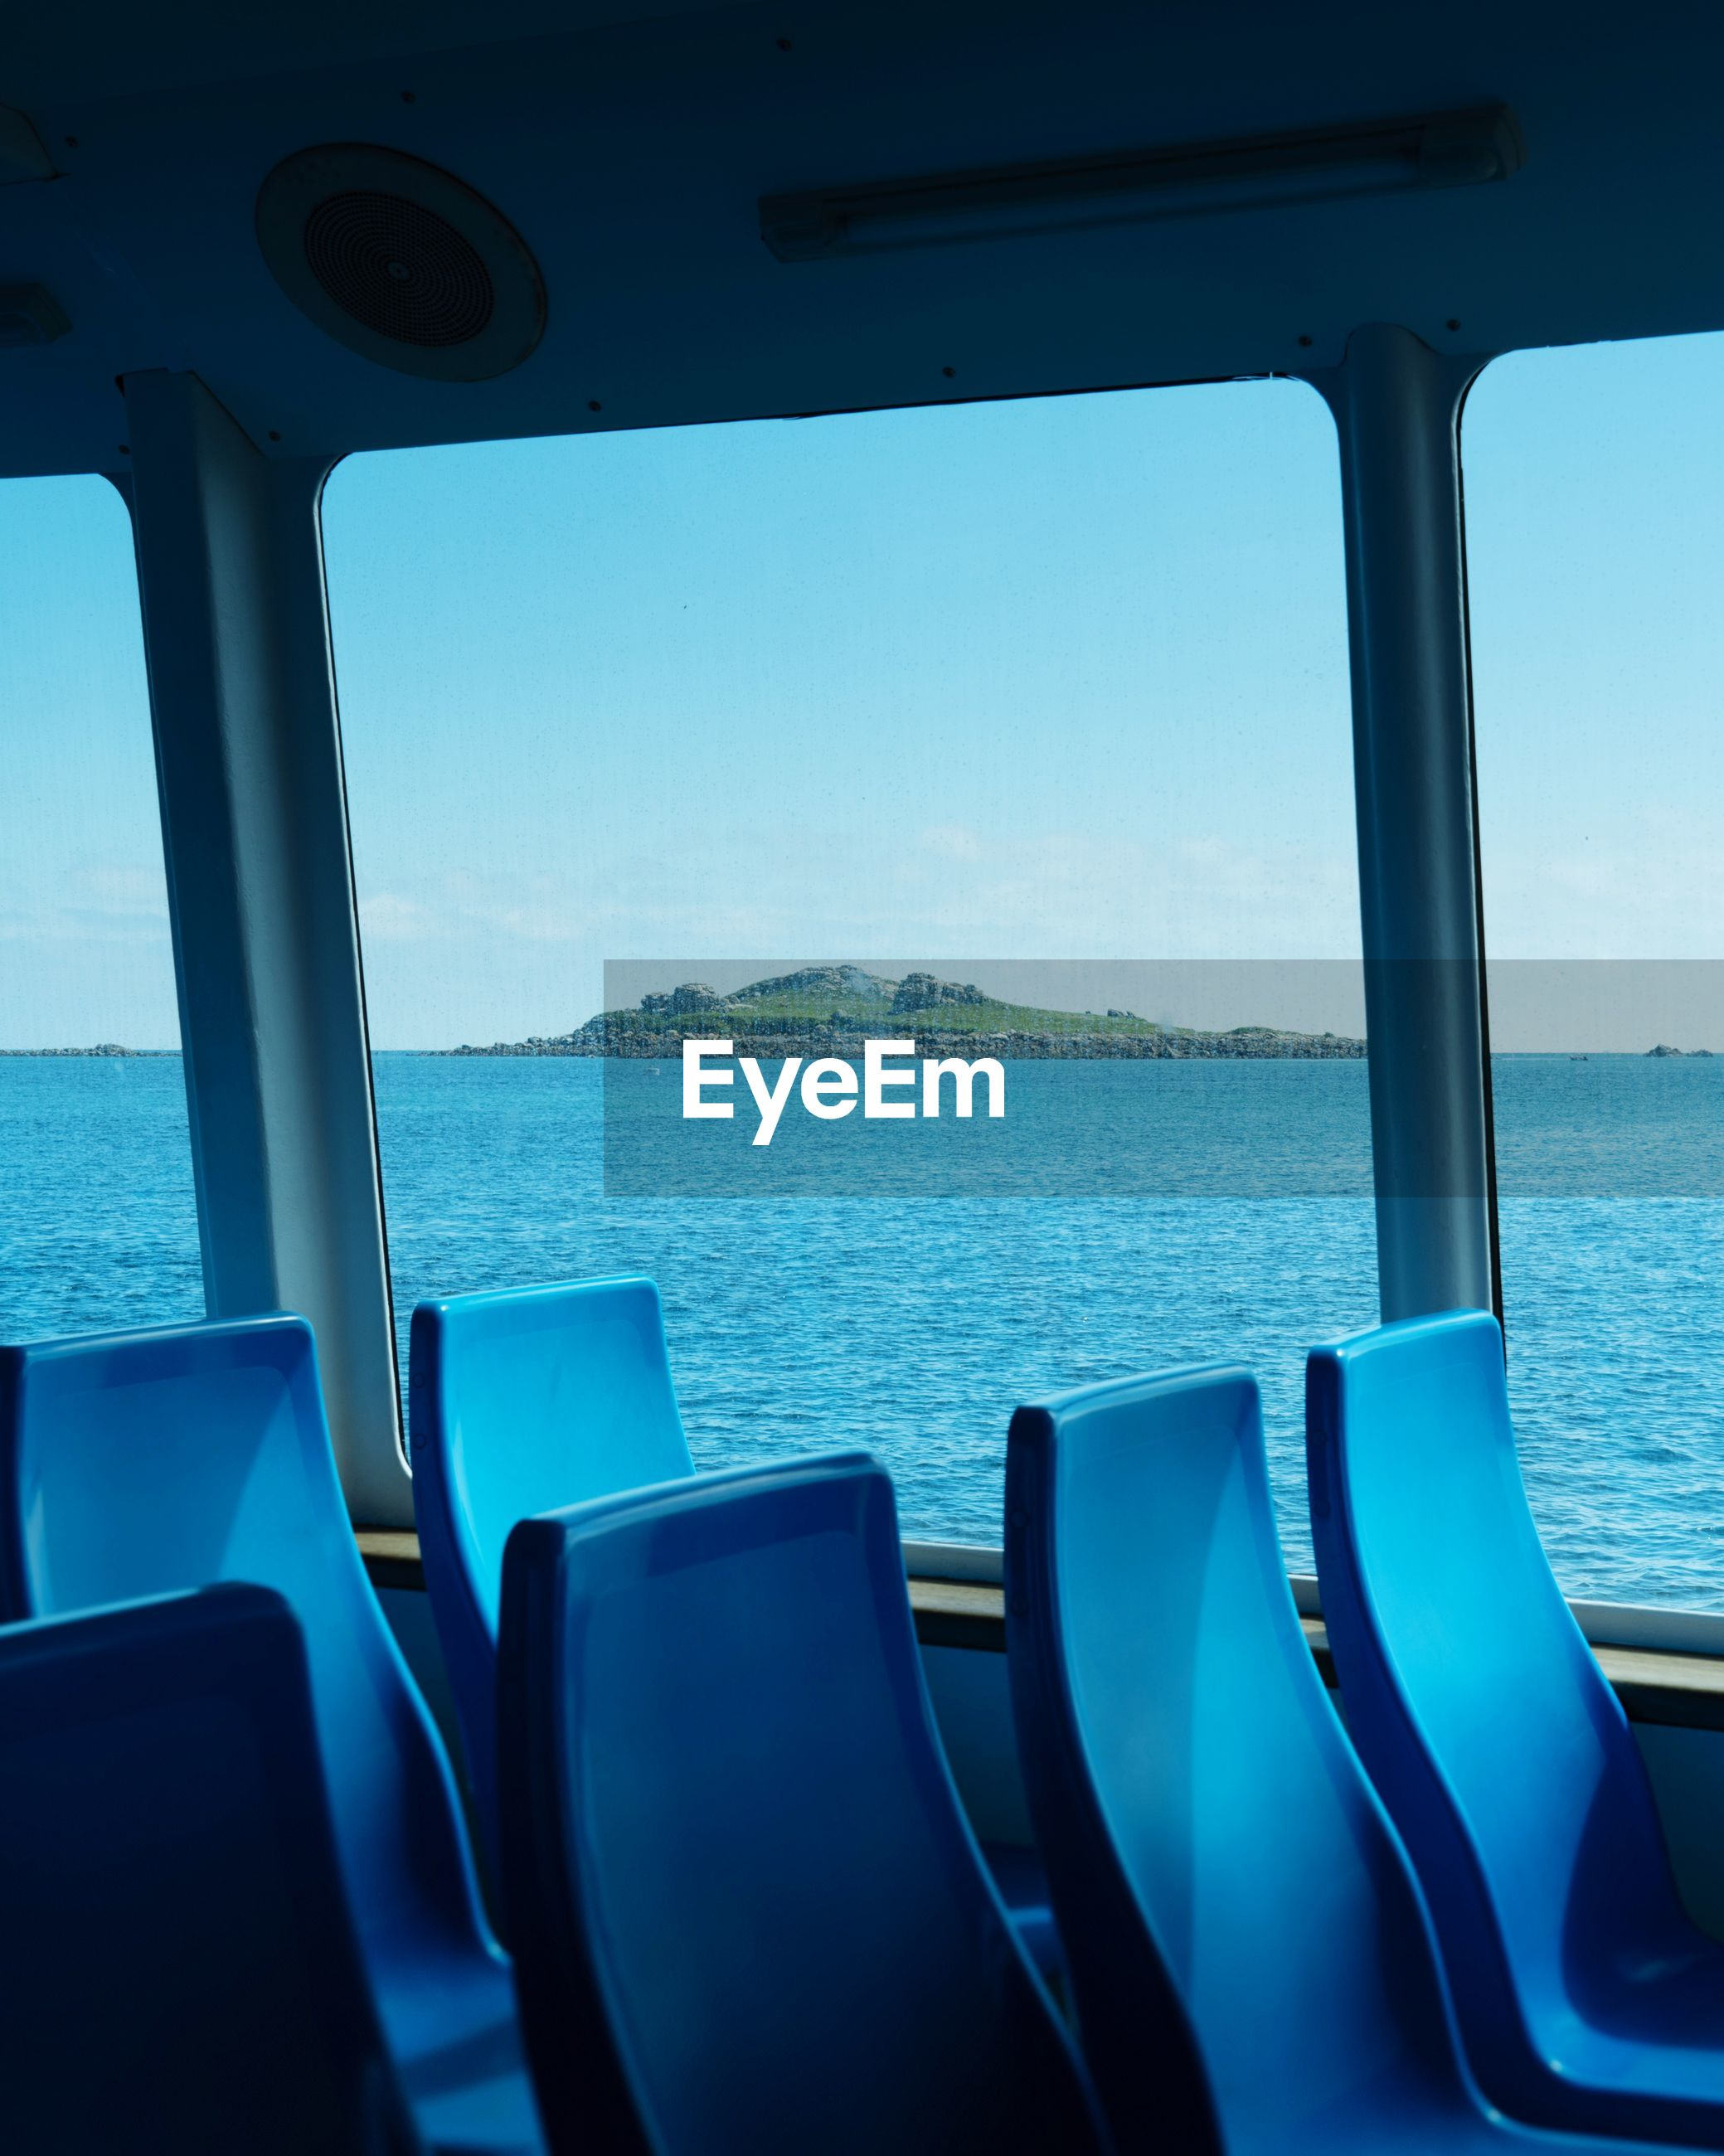 water, sea, sky, no people, vehicle interior, nautical vessel, nature, window, scenics - nature, mode of transportation, transportation, day, transparent, blue, seat, beauty in nature, glass - material, tranquility, tranquil scene, outdoors, horizon over water, passenger craft